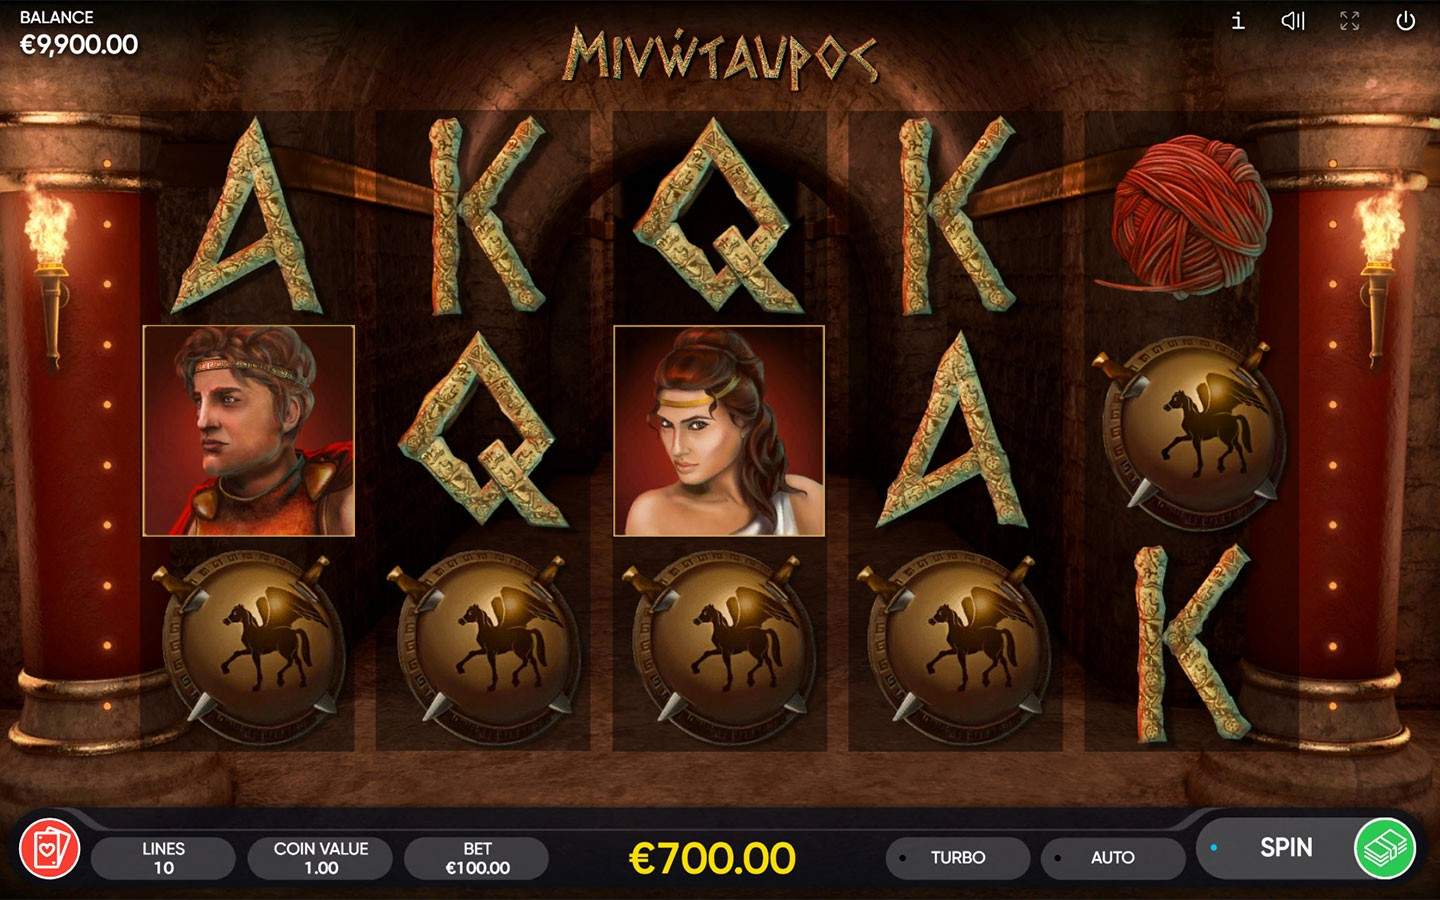 Top Mystic Slots Solutions | Play Minotaurus casino game by Endorphina!